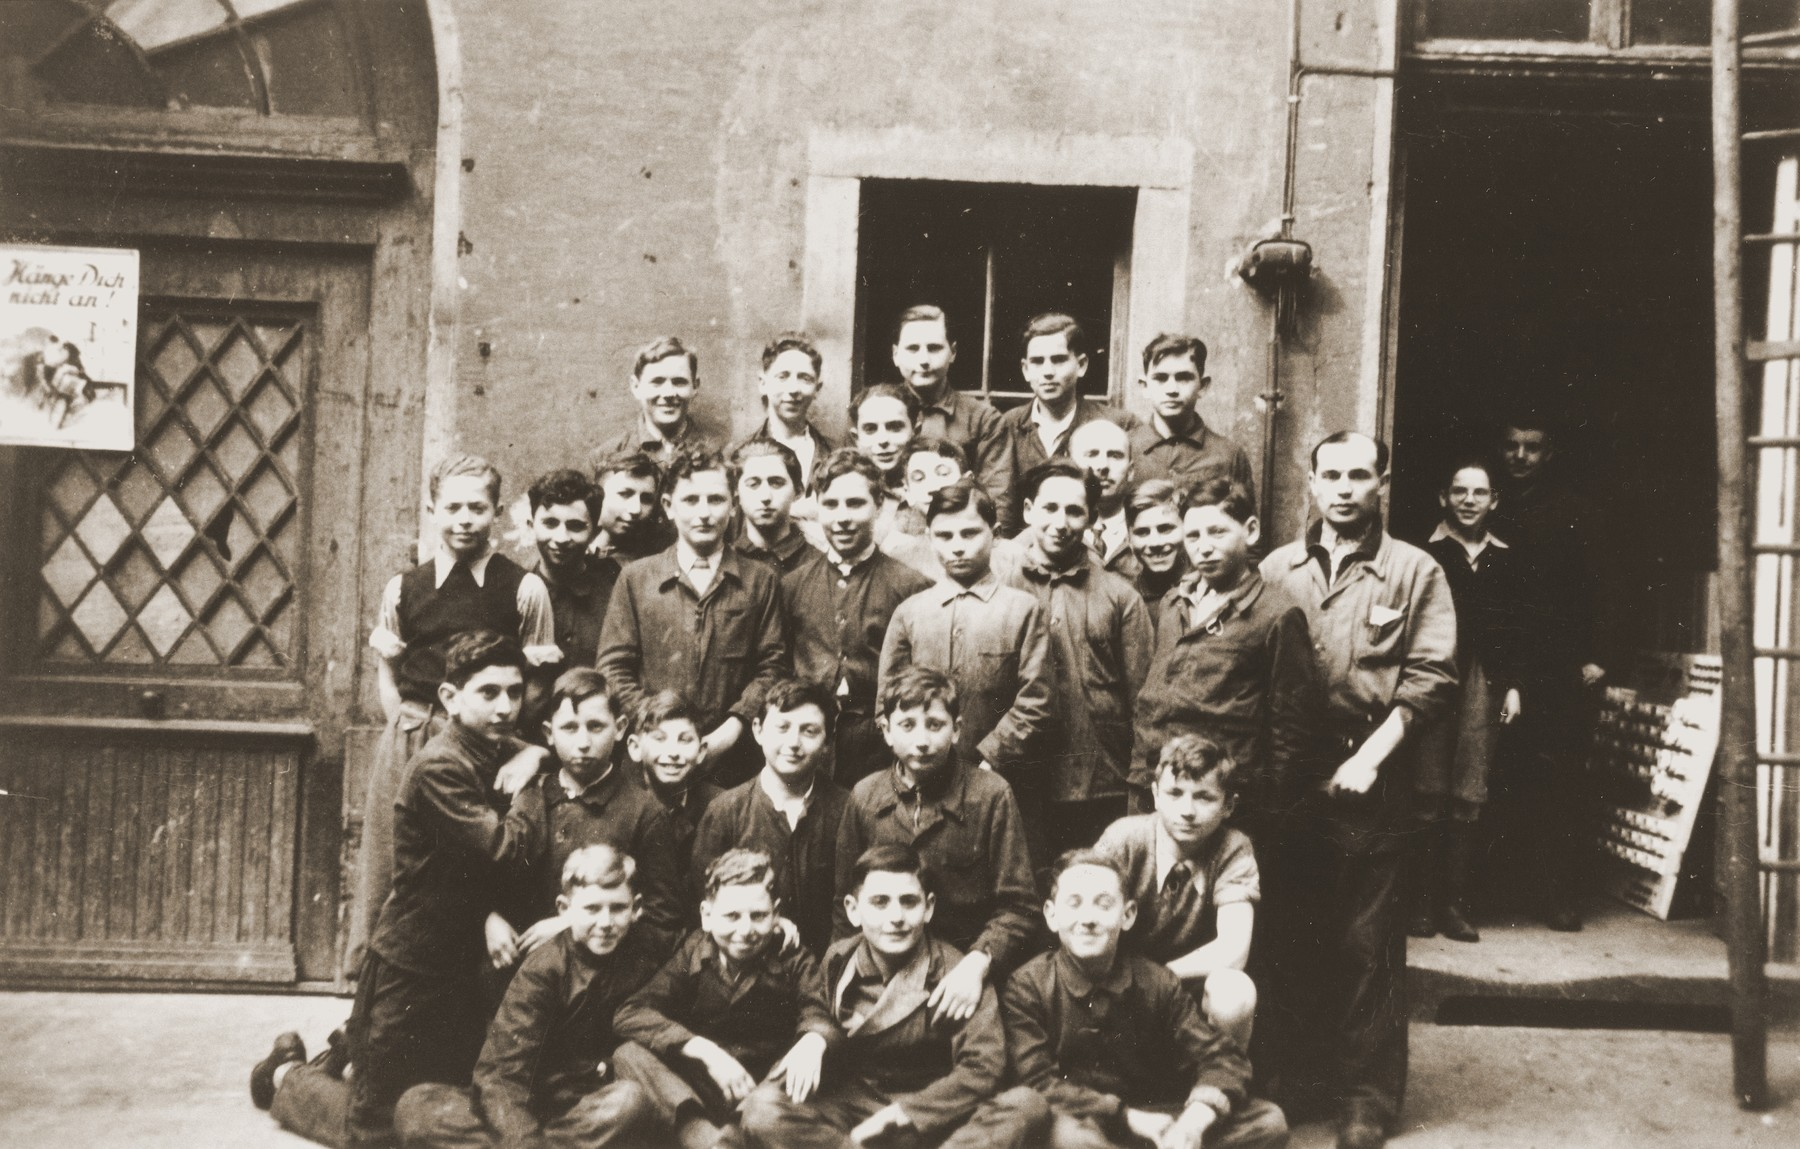 Group portrait of Jewish youth in the keymaker's course at the Juedische Anlehrnwerkstatt [Jewish vocational training school].  Harry Loeb is pictured in the second row from the front, third from the right.  The Juedische Anlehrnwerkstatt was founded in 1936 by the Frankfurt Jewish community to train young Jews expelled from the German public schools.